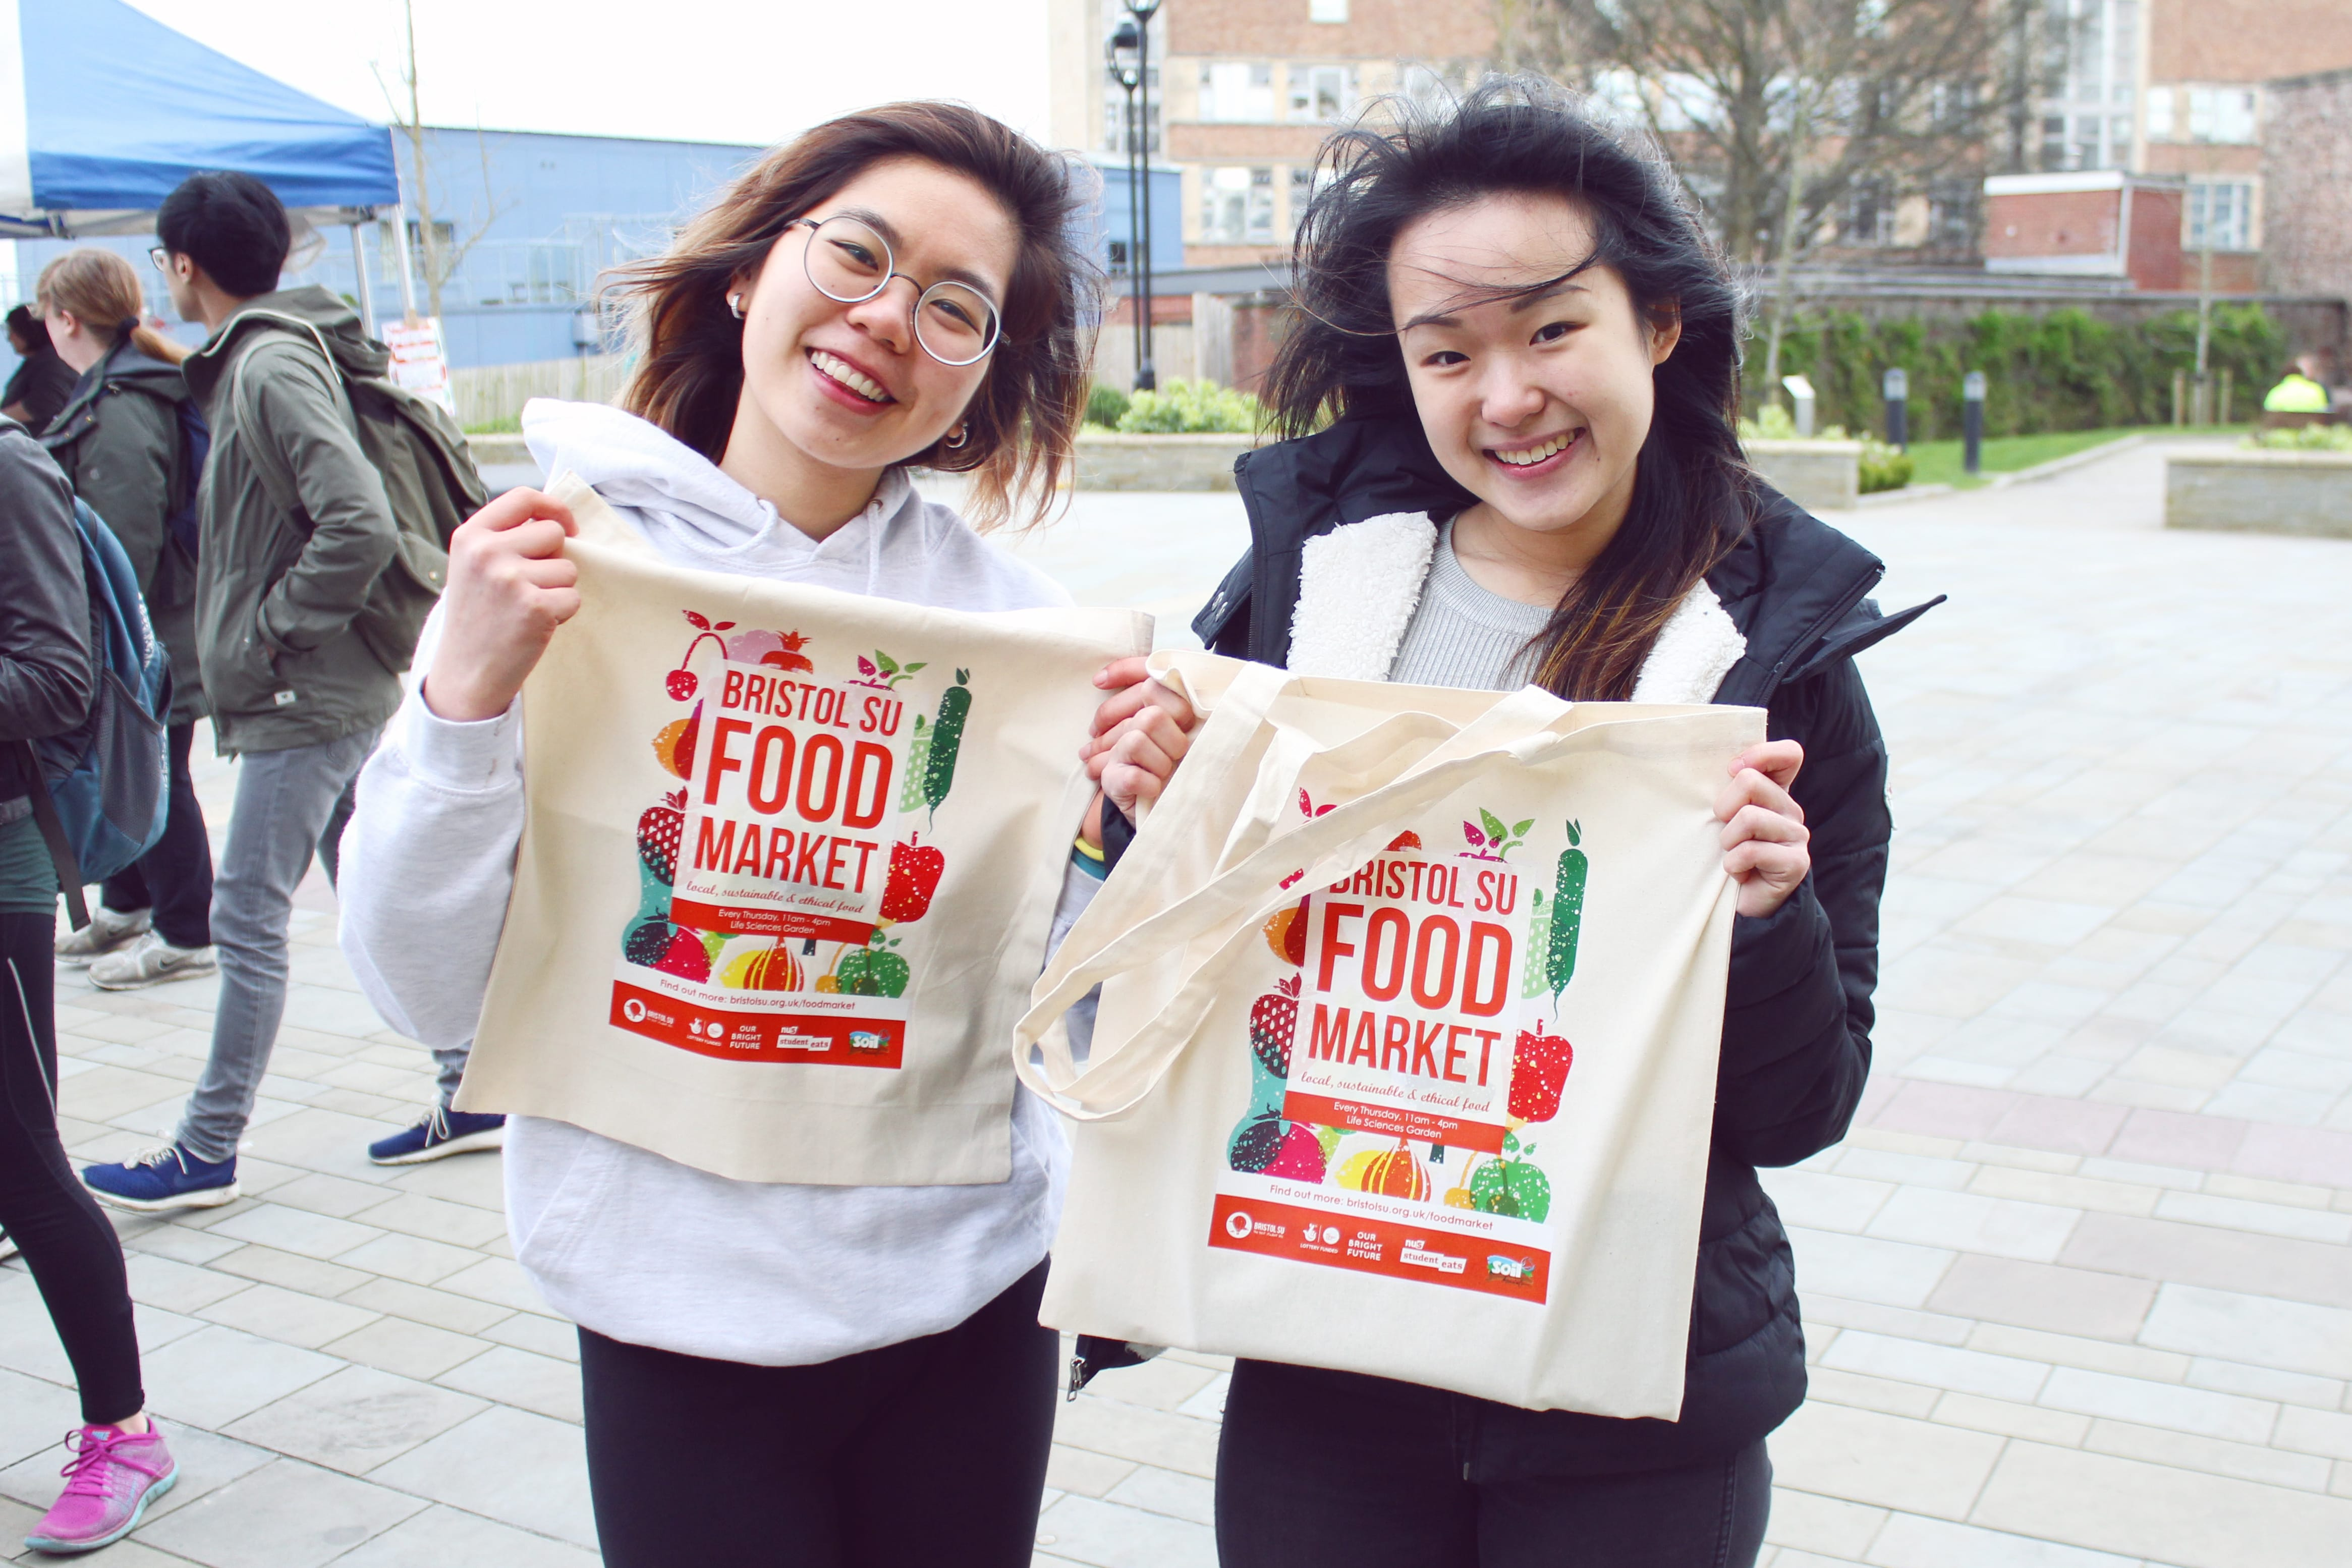 Two students sporting cotton tote bags